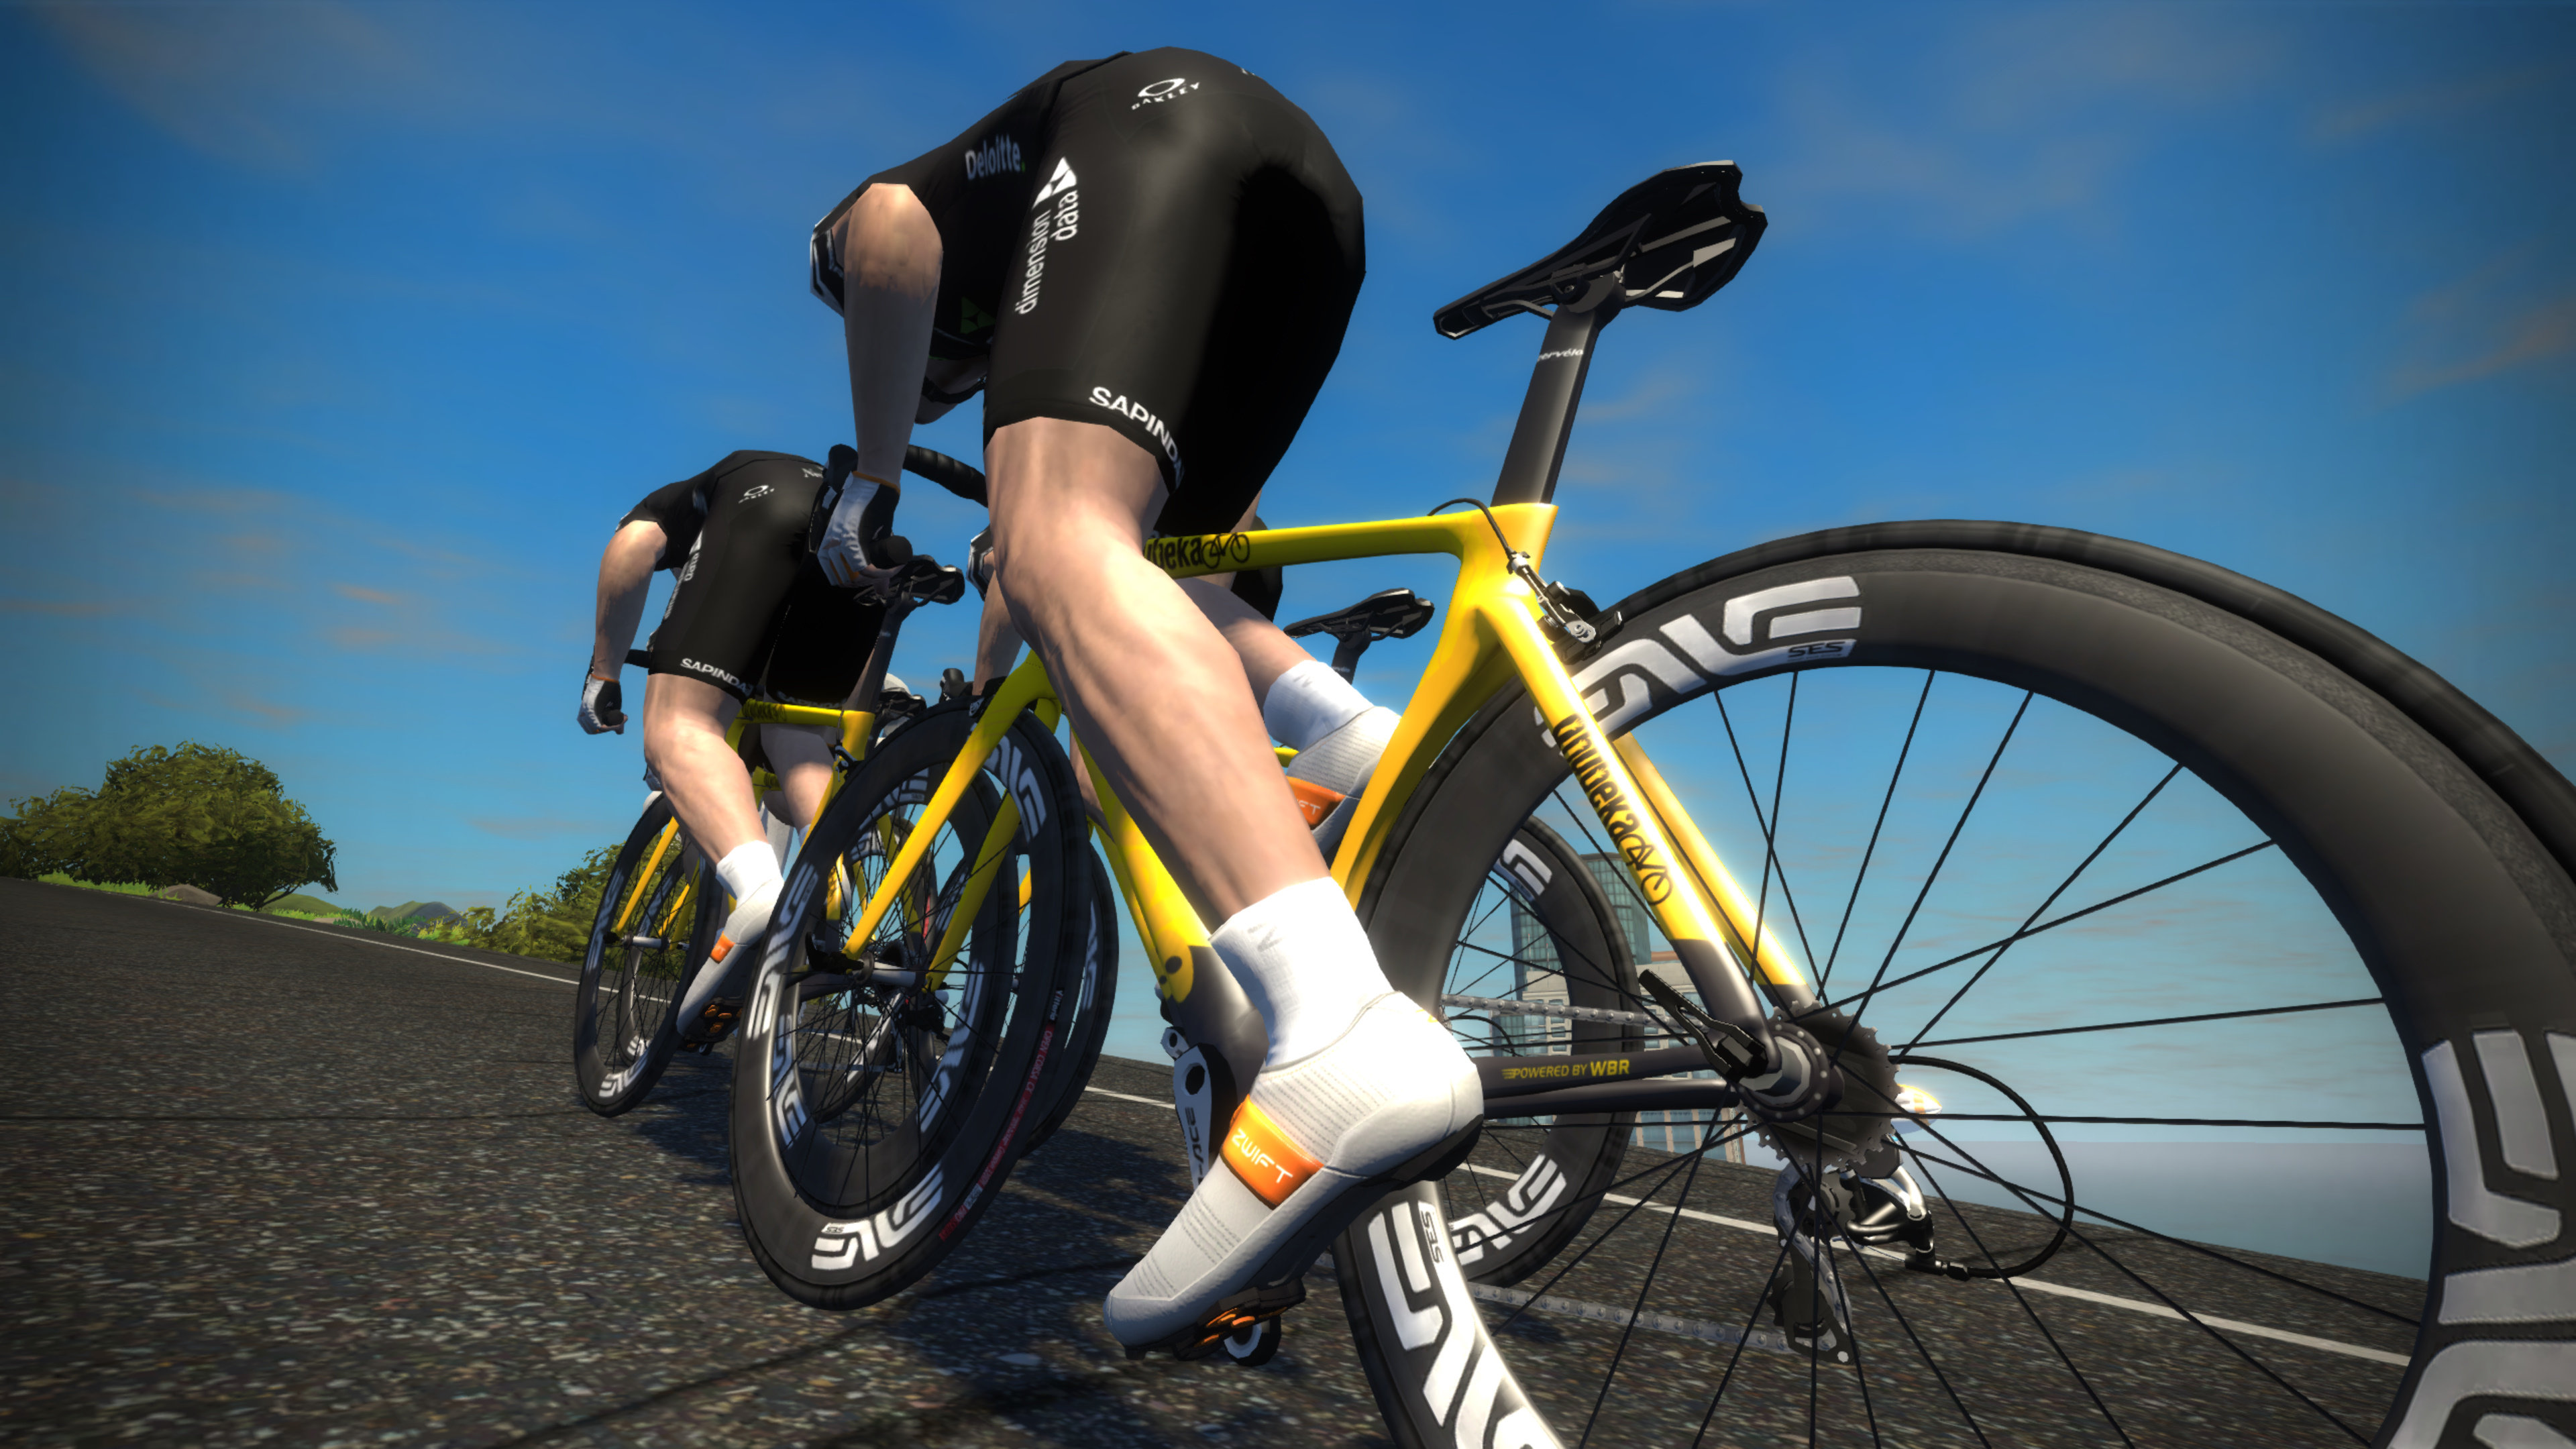 Zwift And Team Dimension Data Promotion Aims To Donate